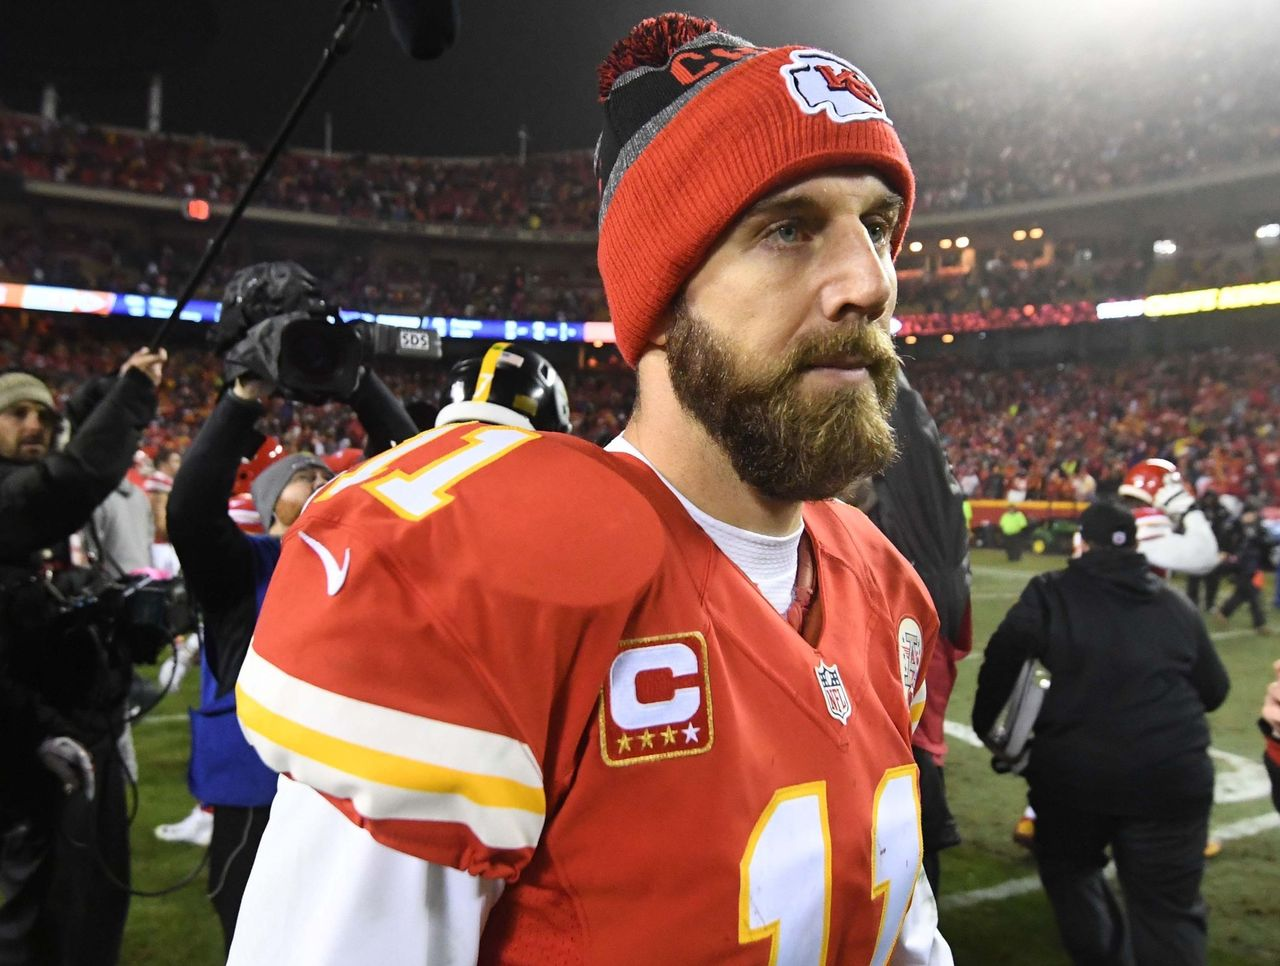 Cropped_2017-01-16t043025z_611276429_nocid_rtrmadp_3_nfl-afc-divisional-pittsburgh-steelers-at-kansas-city-chiefs